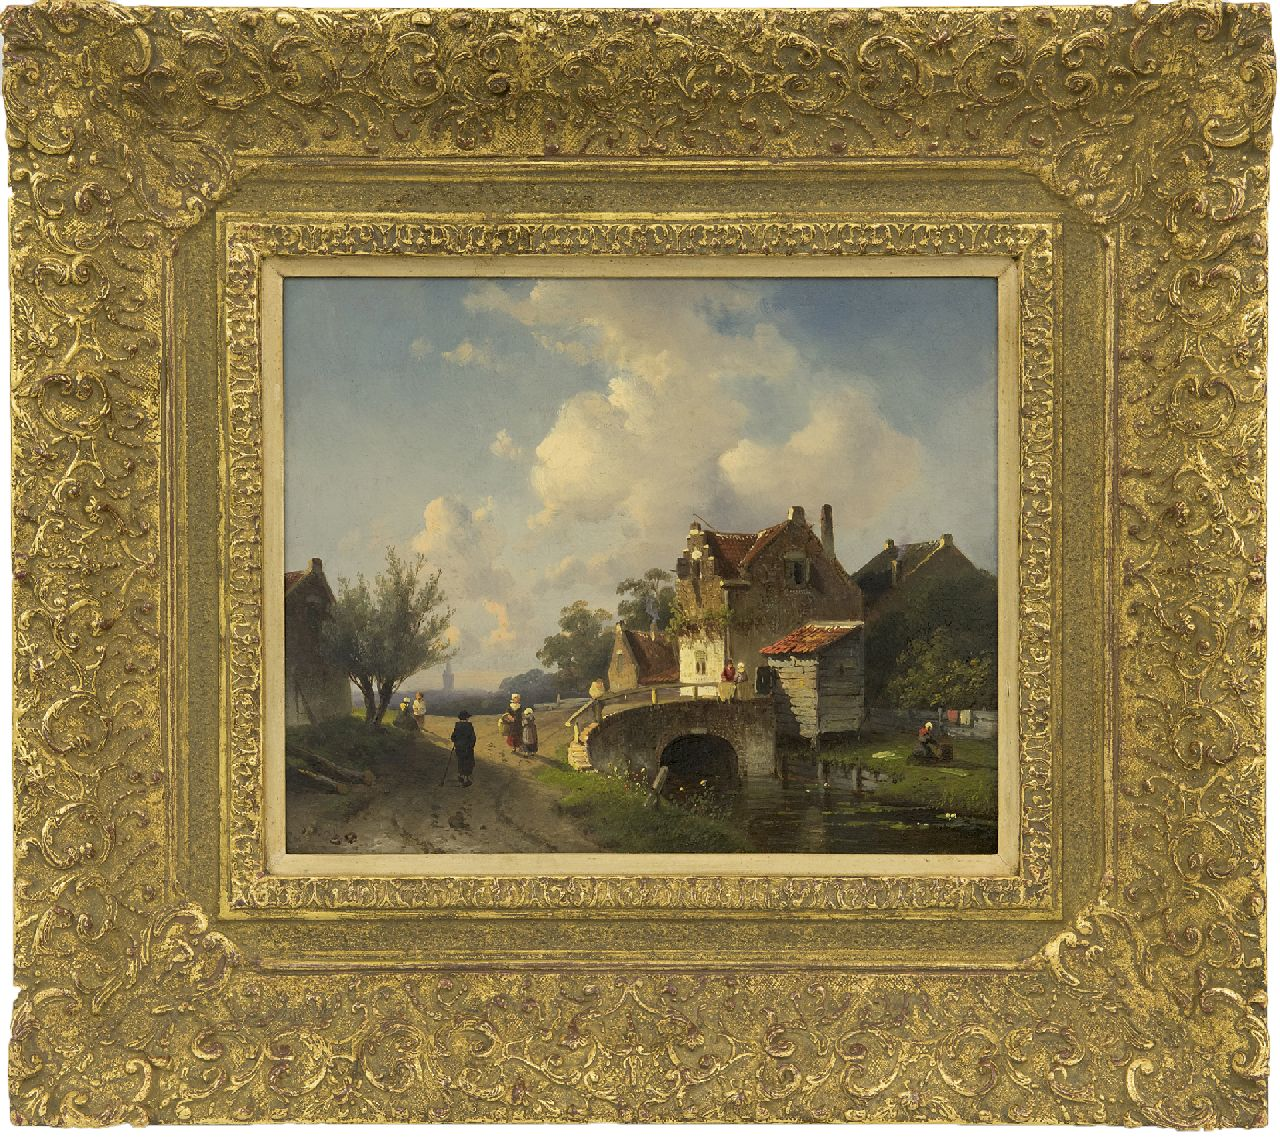 Leickert C.H.J.  | 'Charles' Henri Joseph Leickert, Houses in a river landscape, oil on panel 20.0 x 24.7 cm, signed signed twice (l.l. and l.r.) and painted ca. 1860